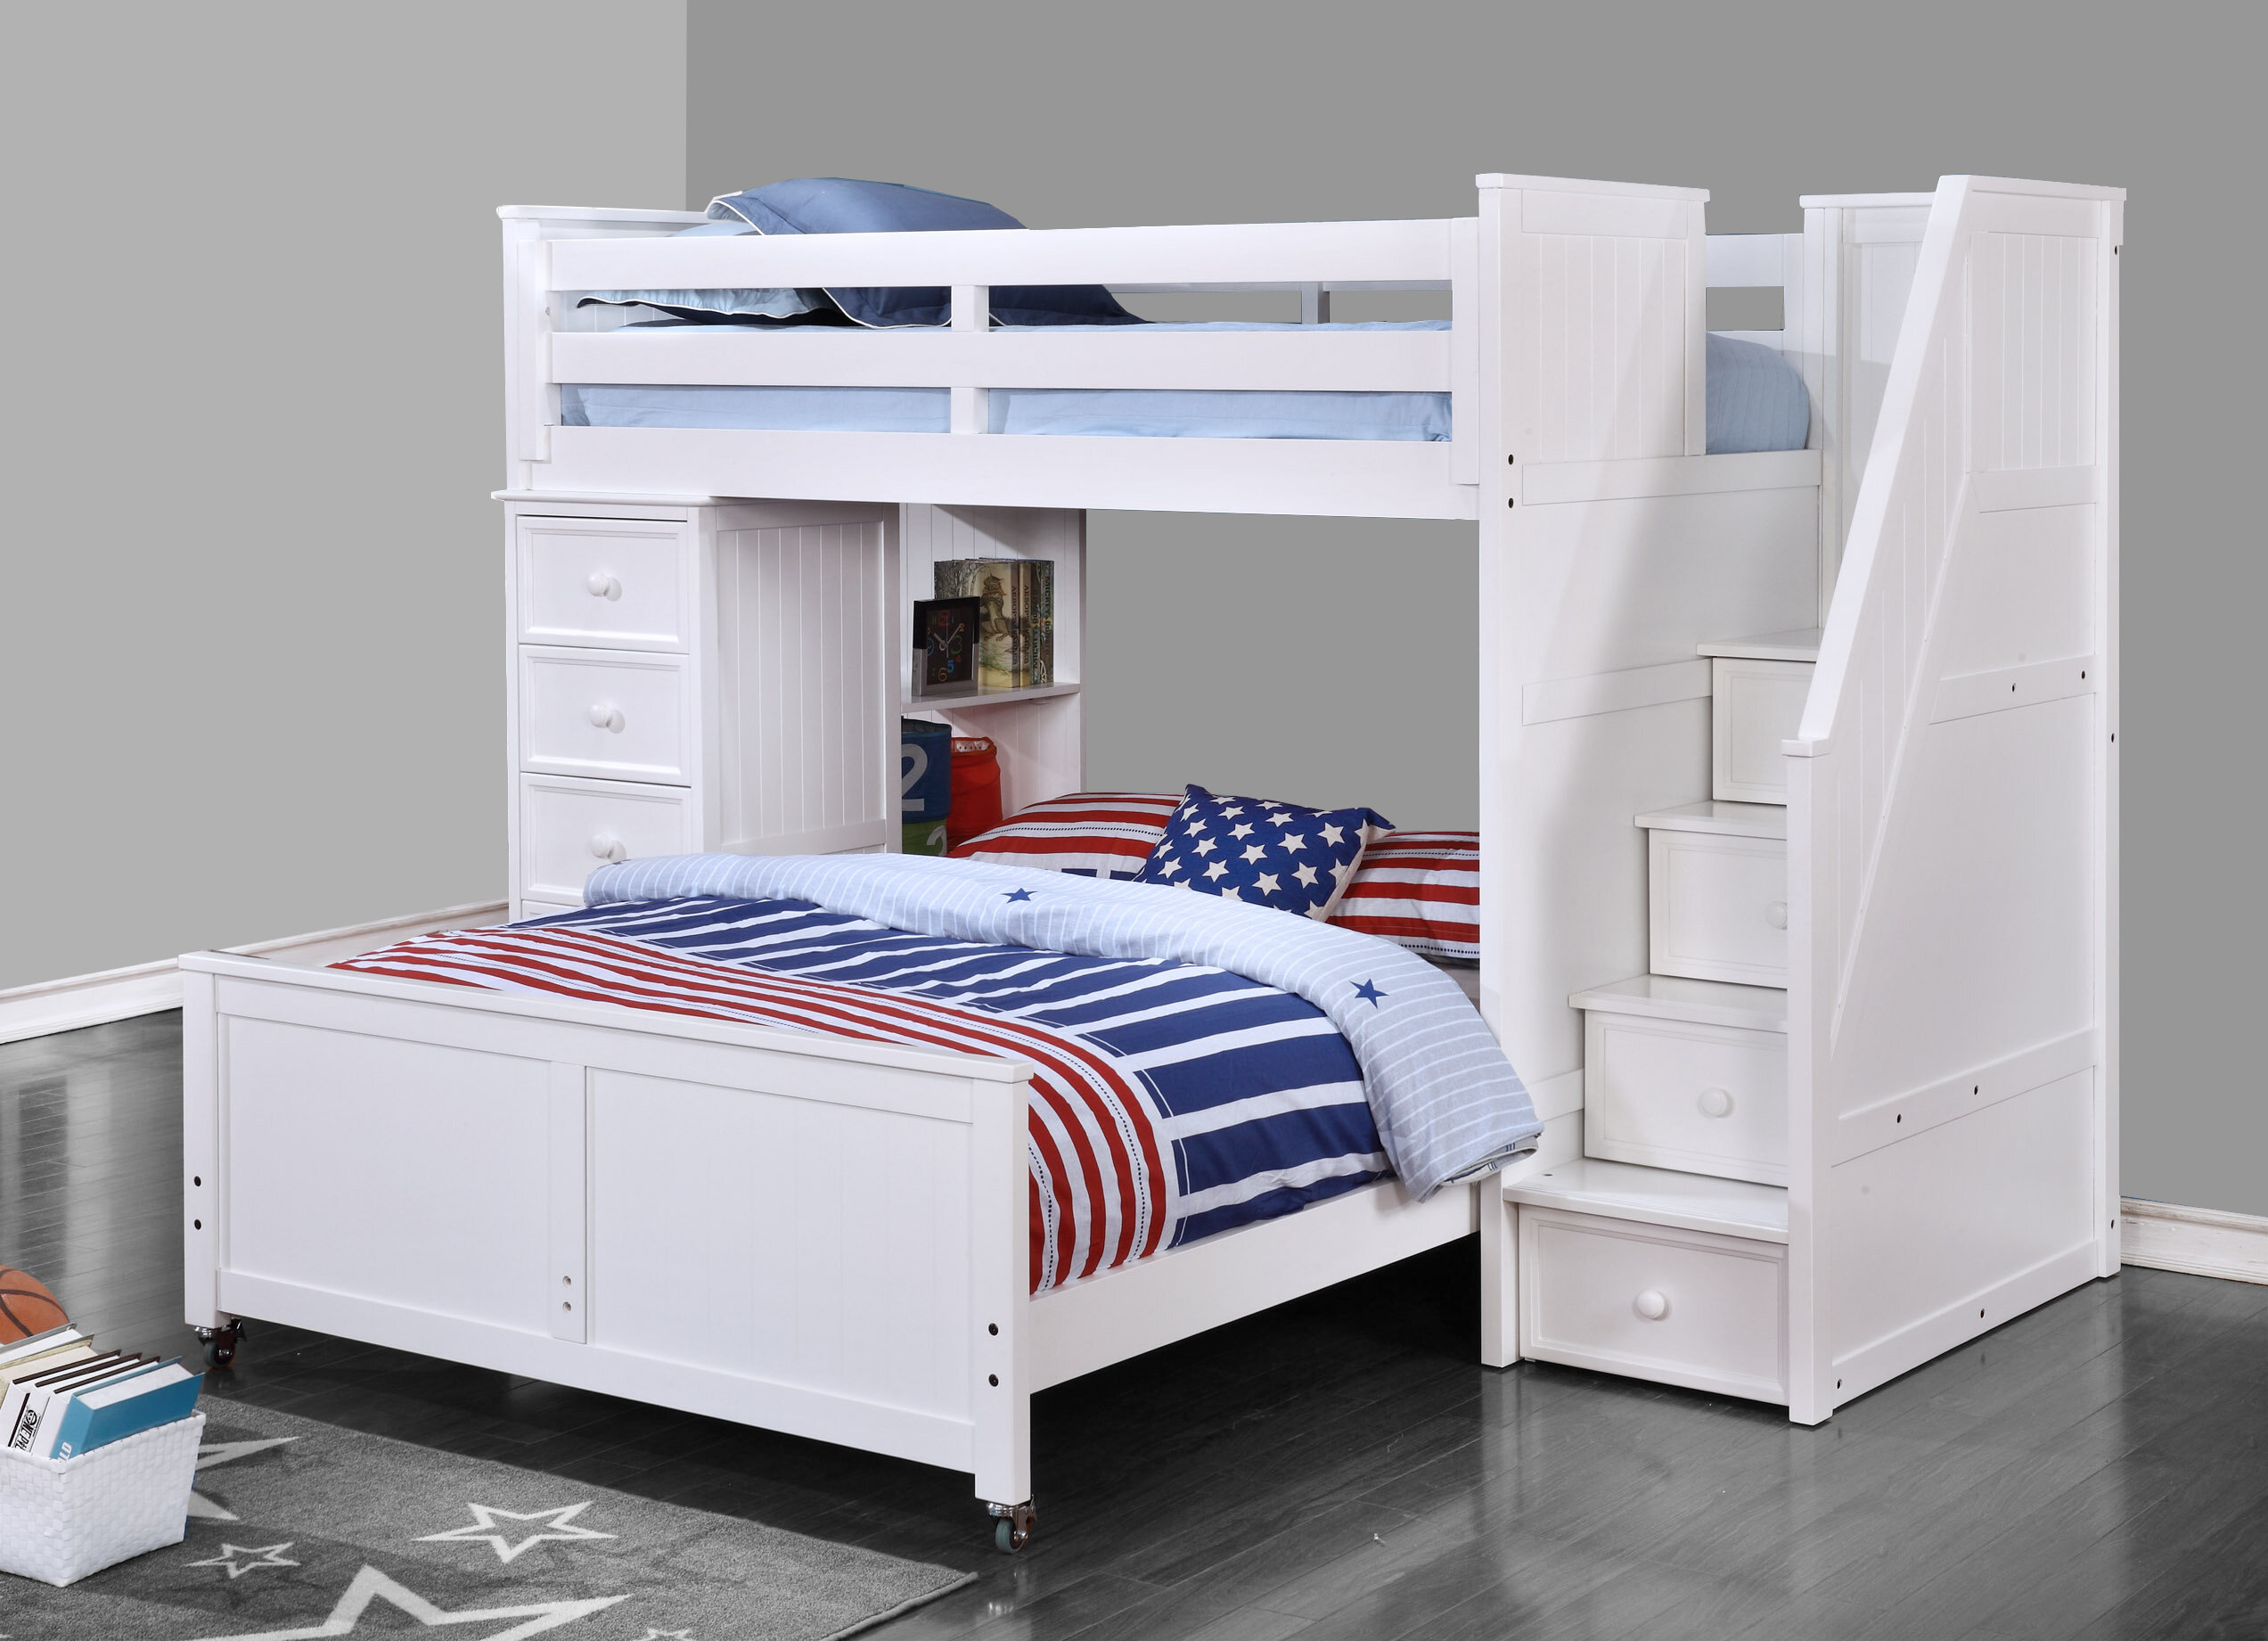 Full Over Full L Shaped Bunk Beds Cheaper Than Retail Price Buy Clothing Accessories And Lifestyle Products For Women Men